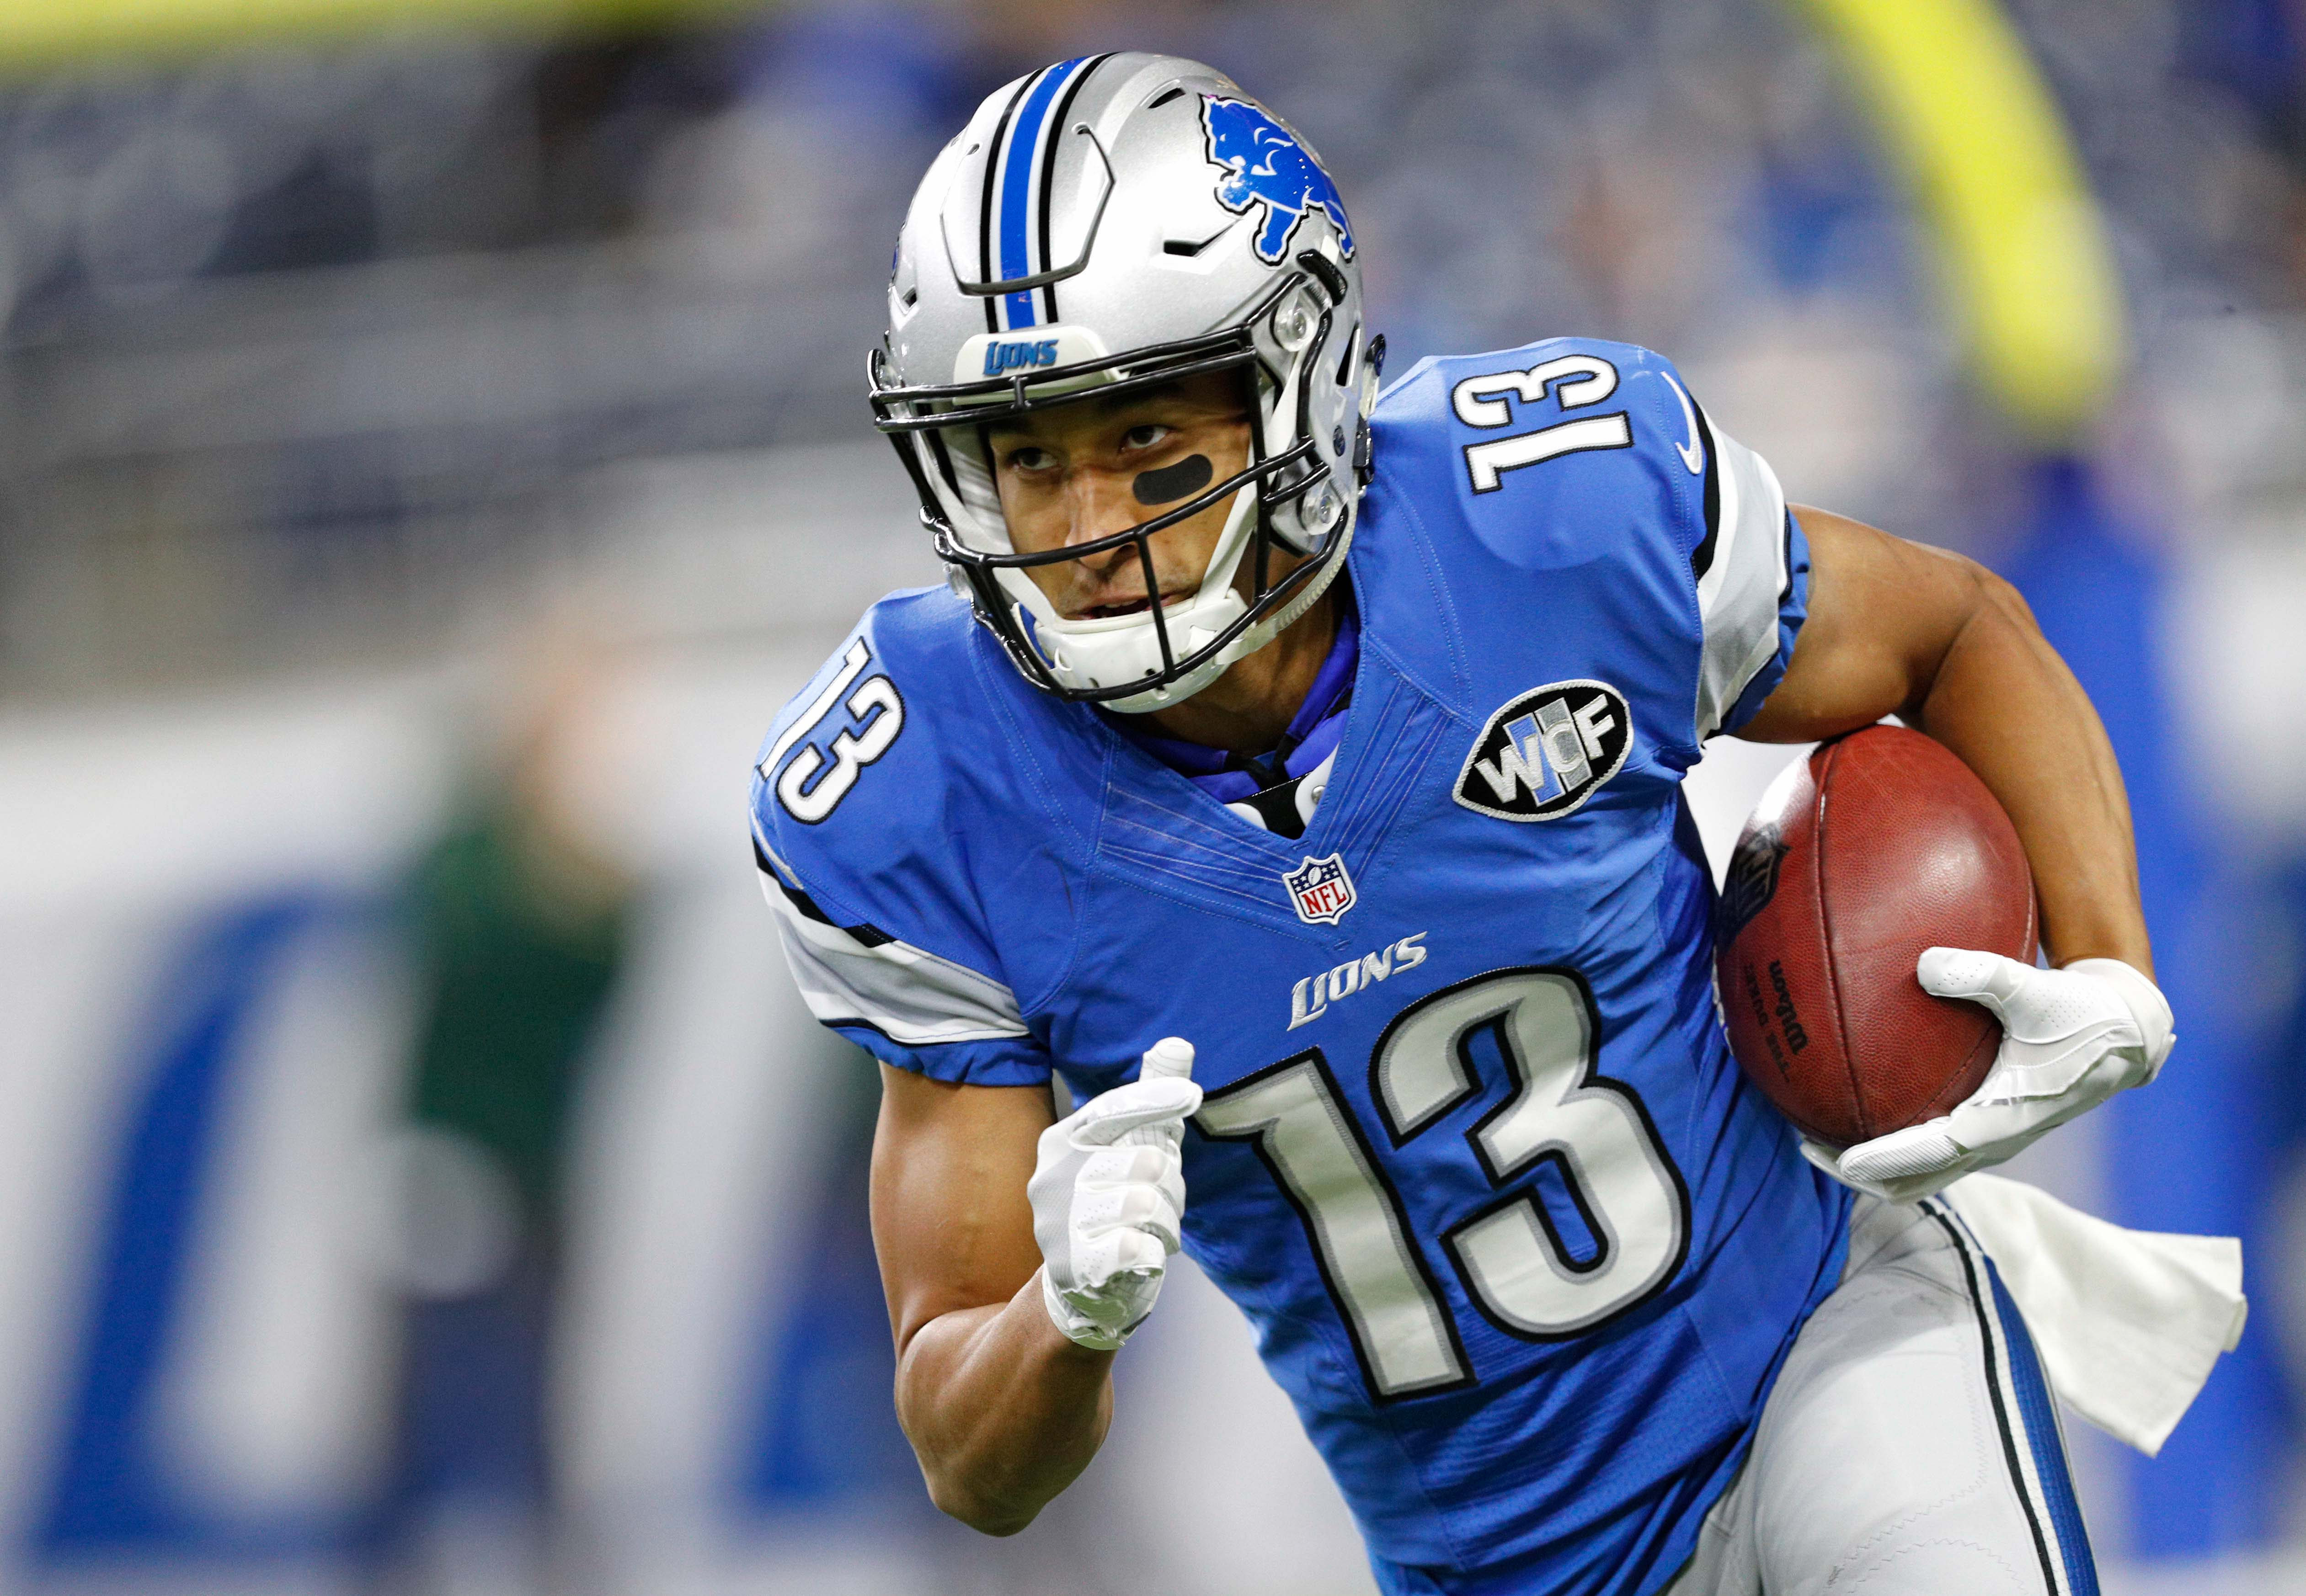 Nf Nfl Free Agents 2016 Rankings - Jan 1 2017 detroit mi usa detroit lions wide receiver t j jones 13 runs with the ball before the game against the green bay packers at ford field